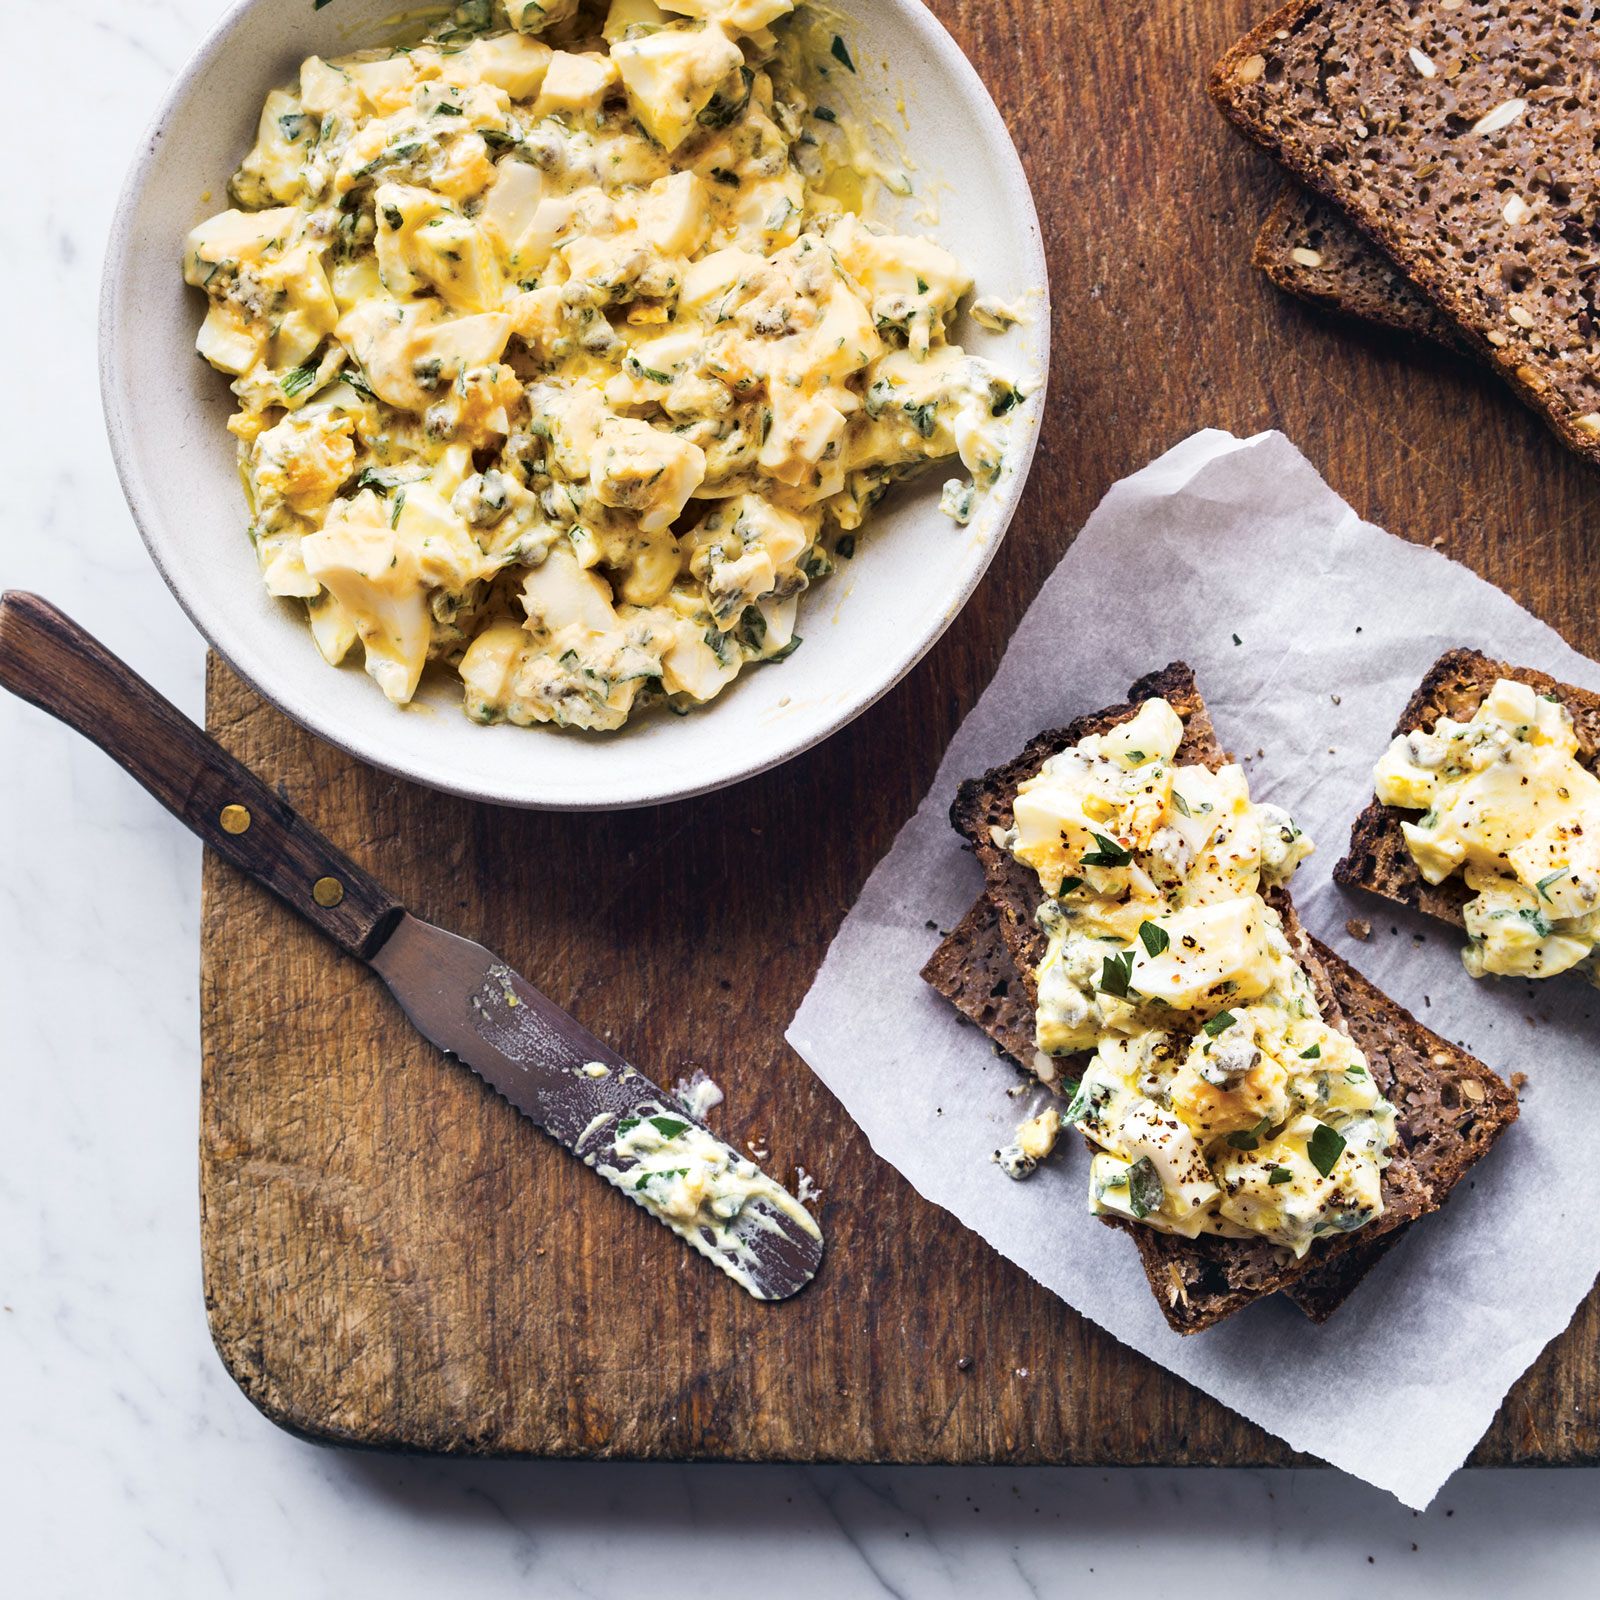 Herbed Egg Salad